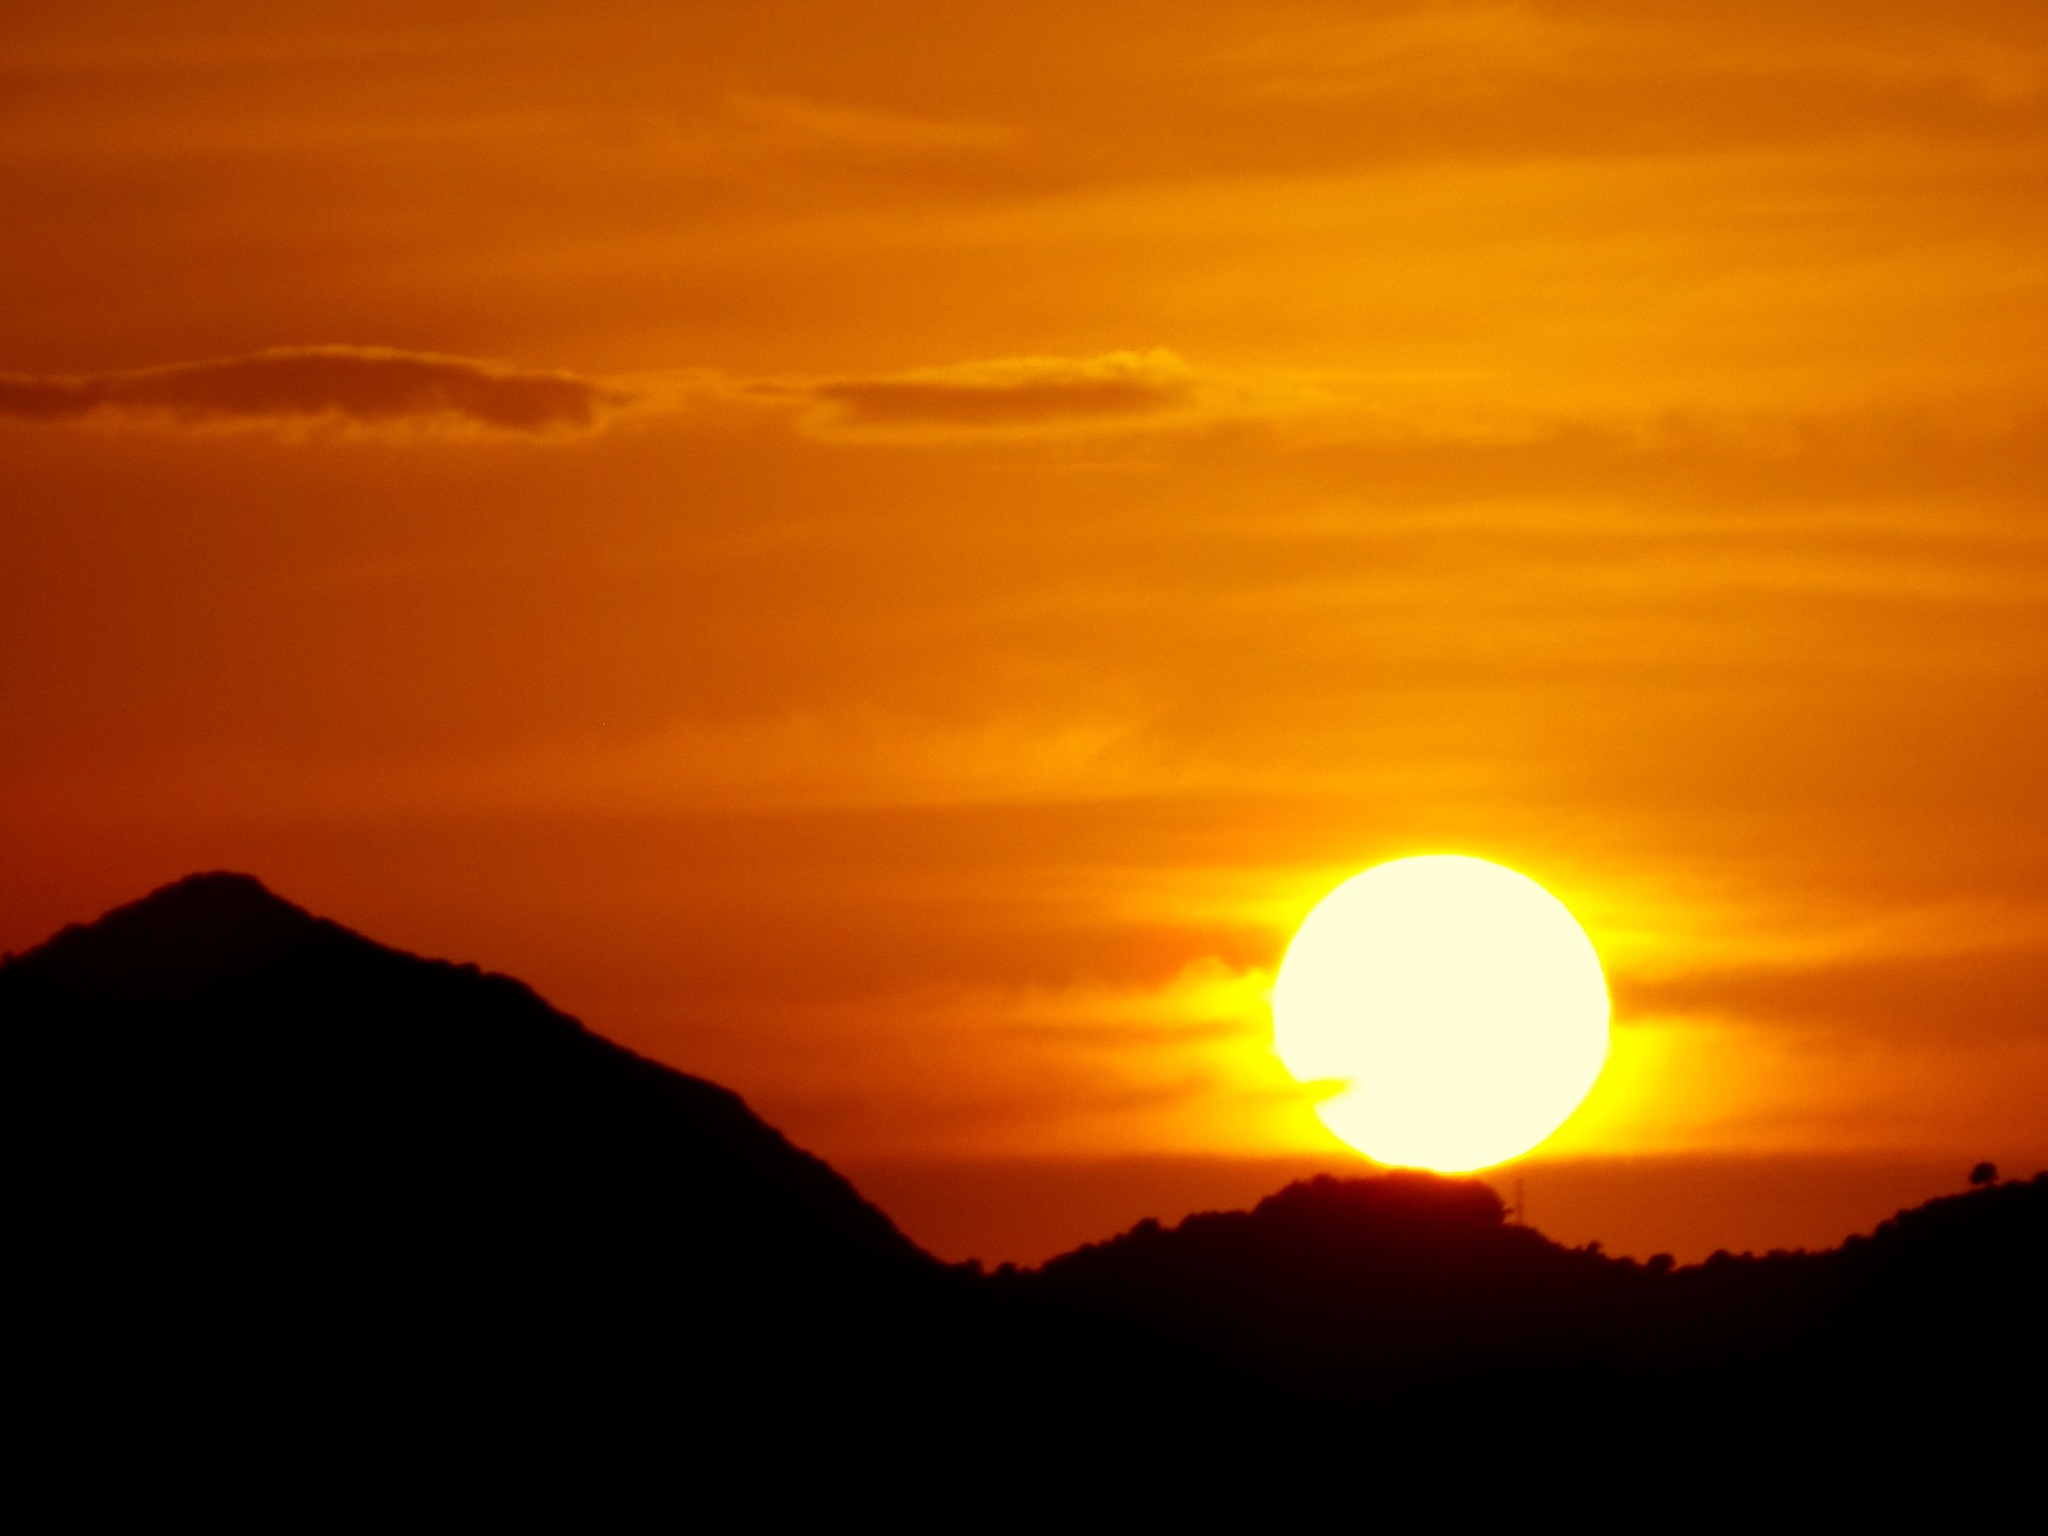 GOOD NIGHT FROM BODRUM, TONIGHT'S SUNSET by Akin Saner